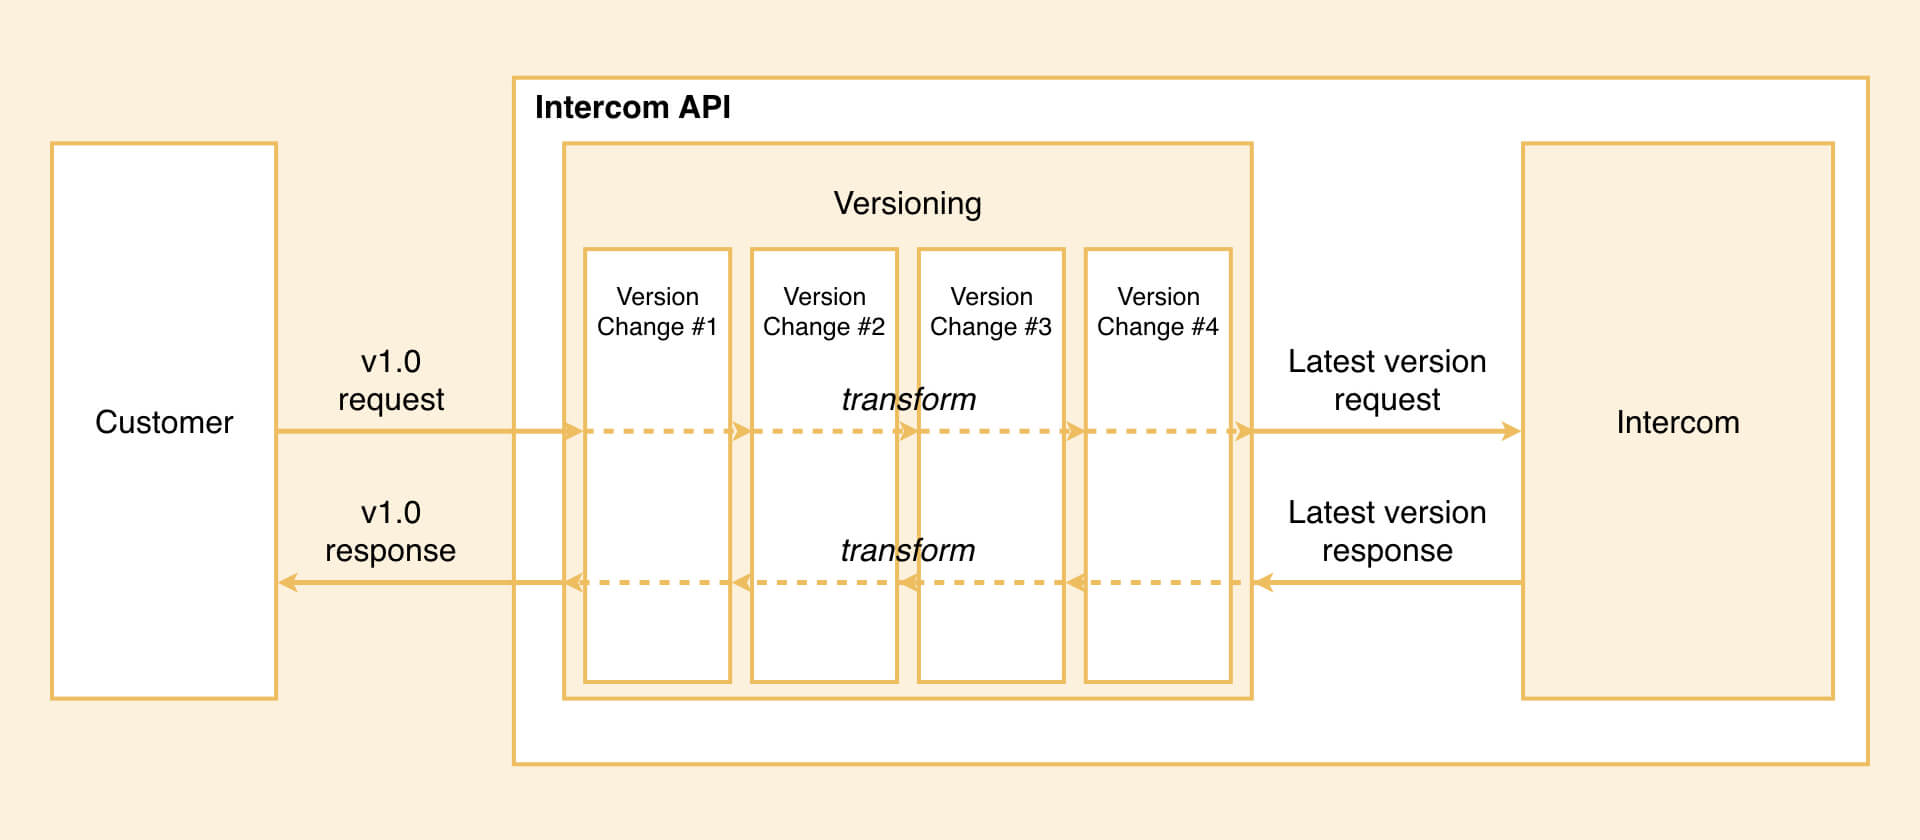 Diagram of how API versioning works in Intercom